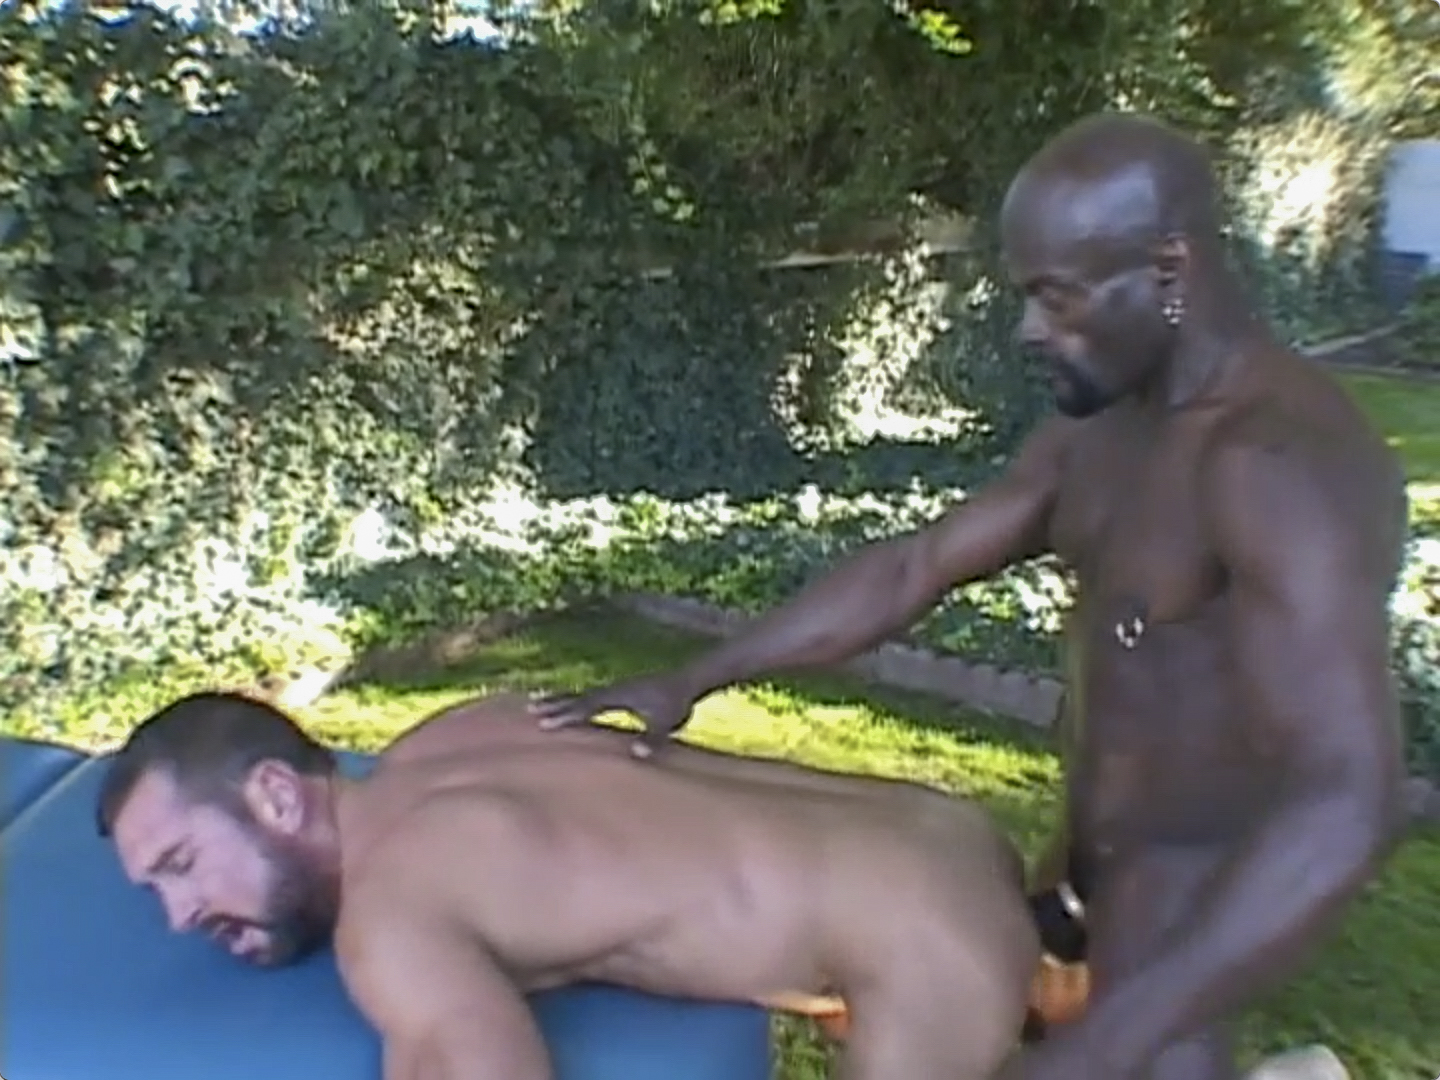 Ben Gunn bareback fuck will west gay hot daddy dude men porn